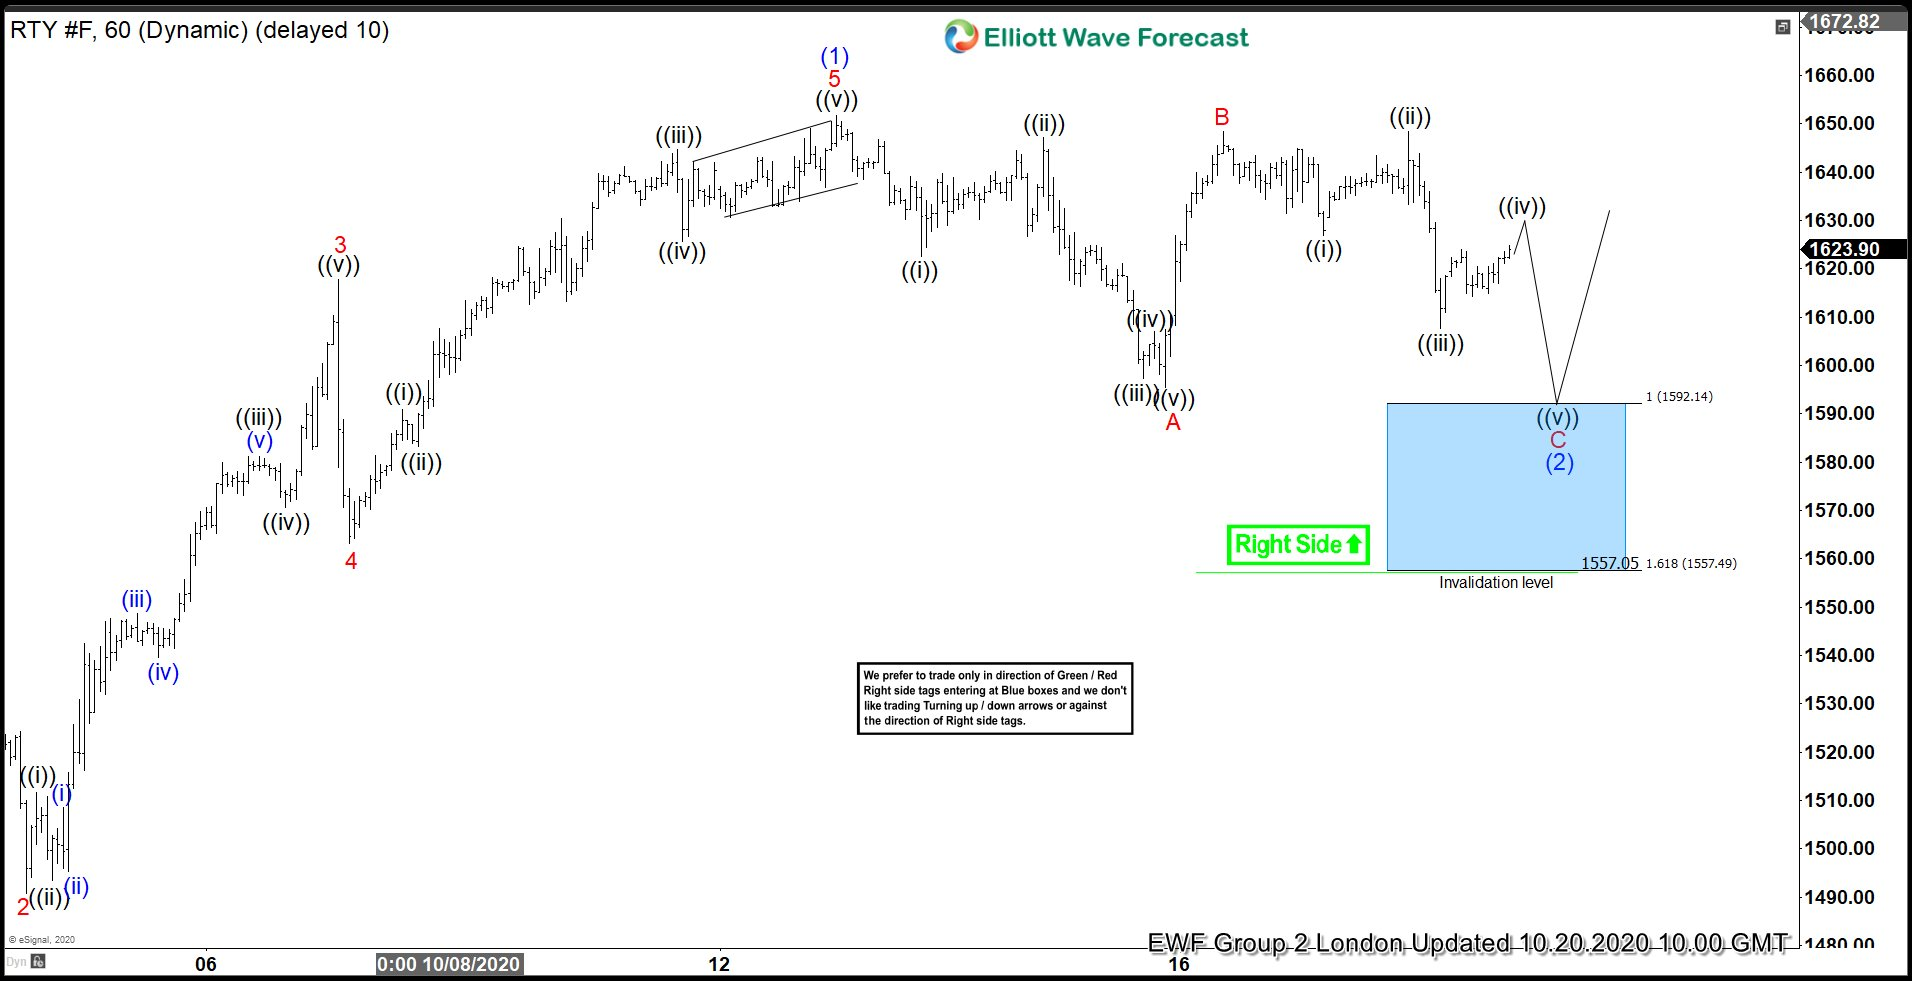 Russell ($RTY #F) Working with the Right Side and The Blue Box